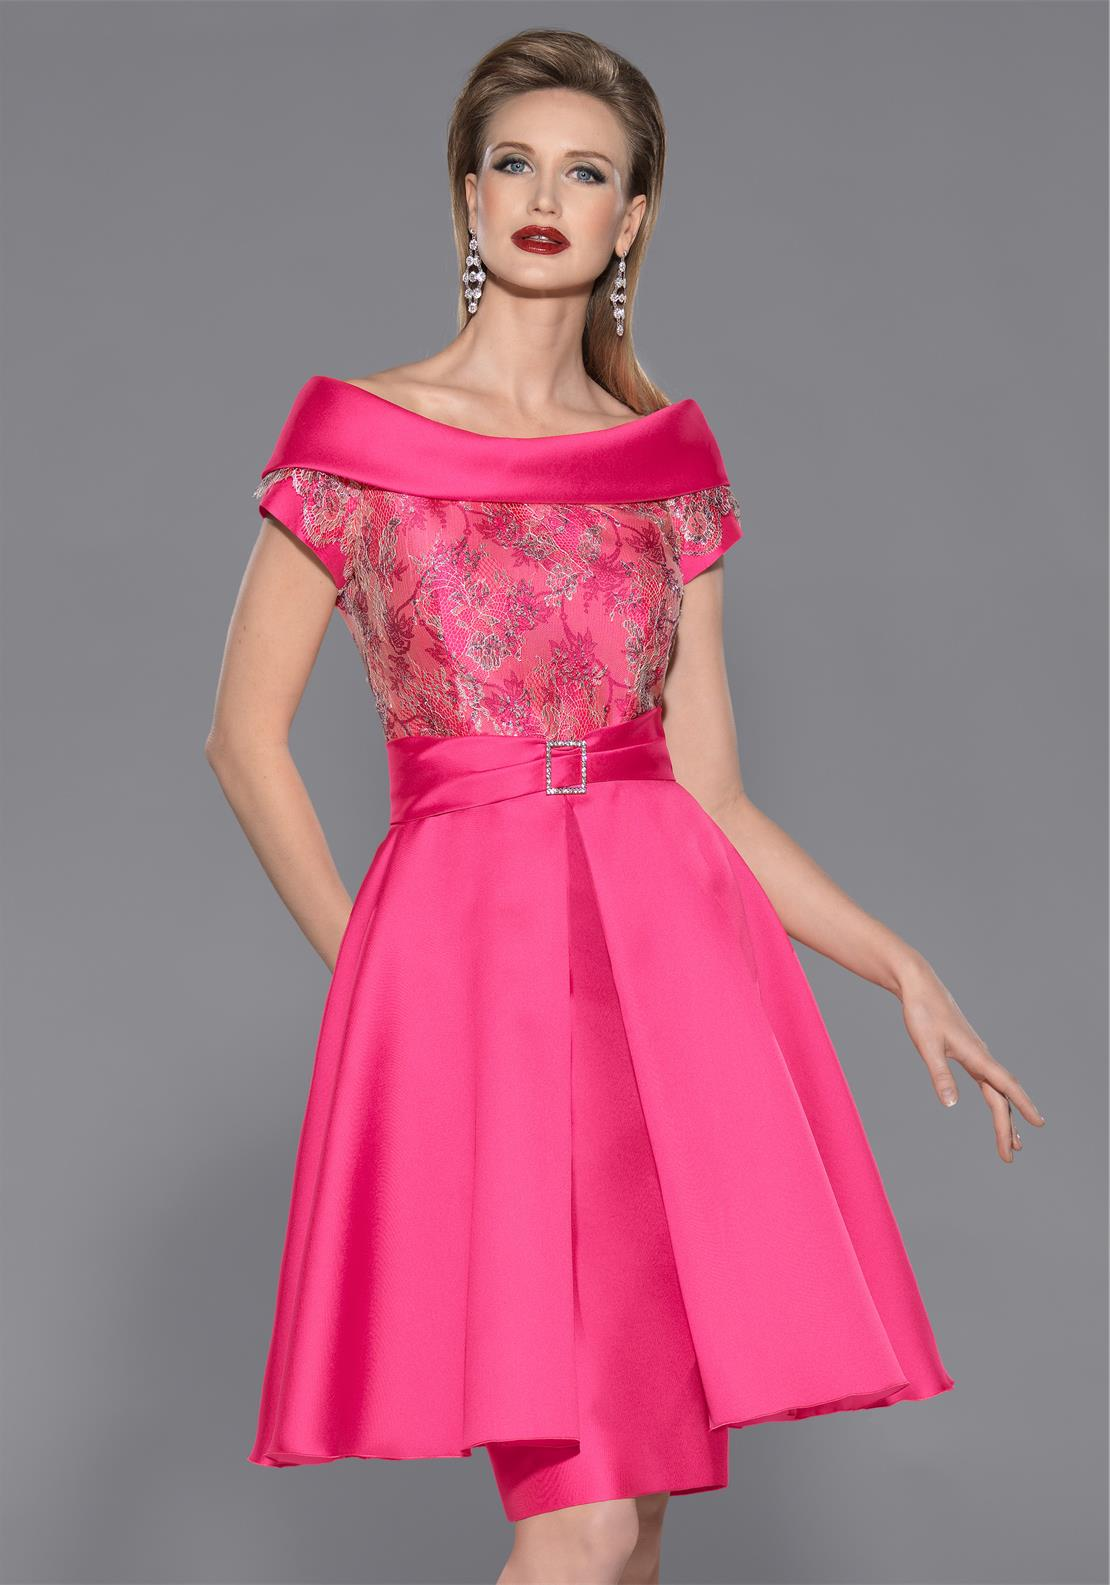 Teresa Ripoll Embroidered Bodice Overlay Pencil Dress, Hot Pink